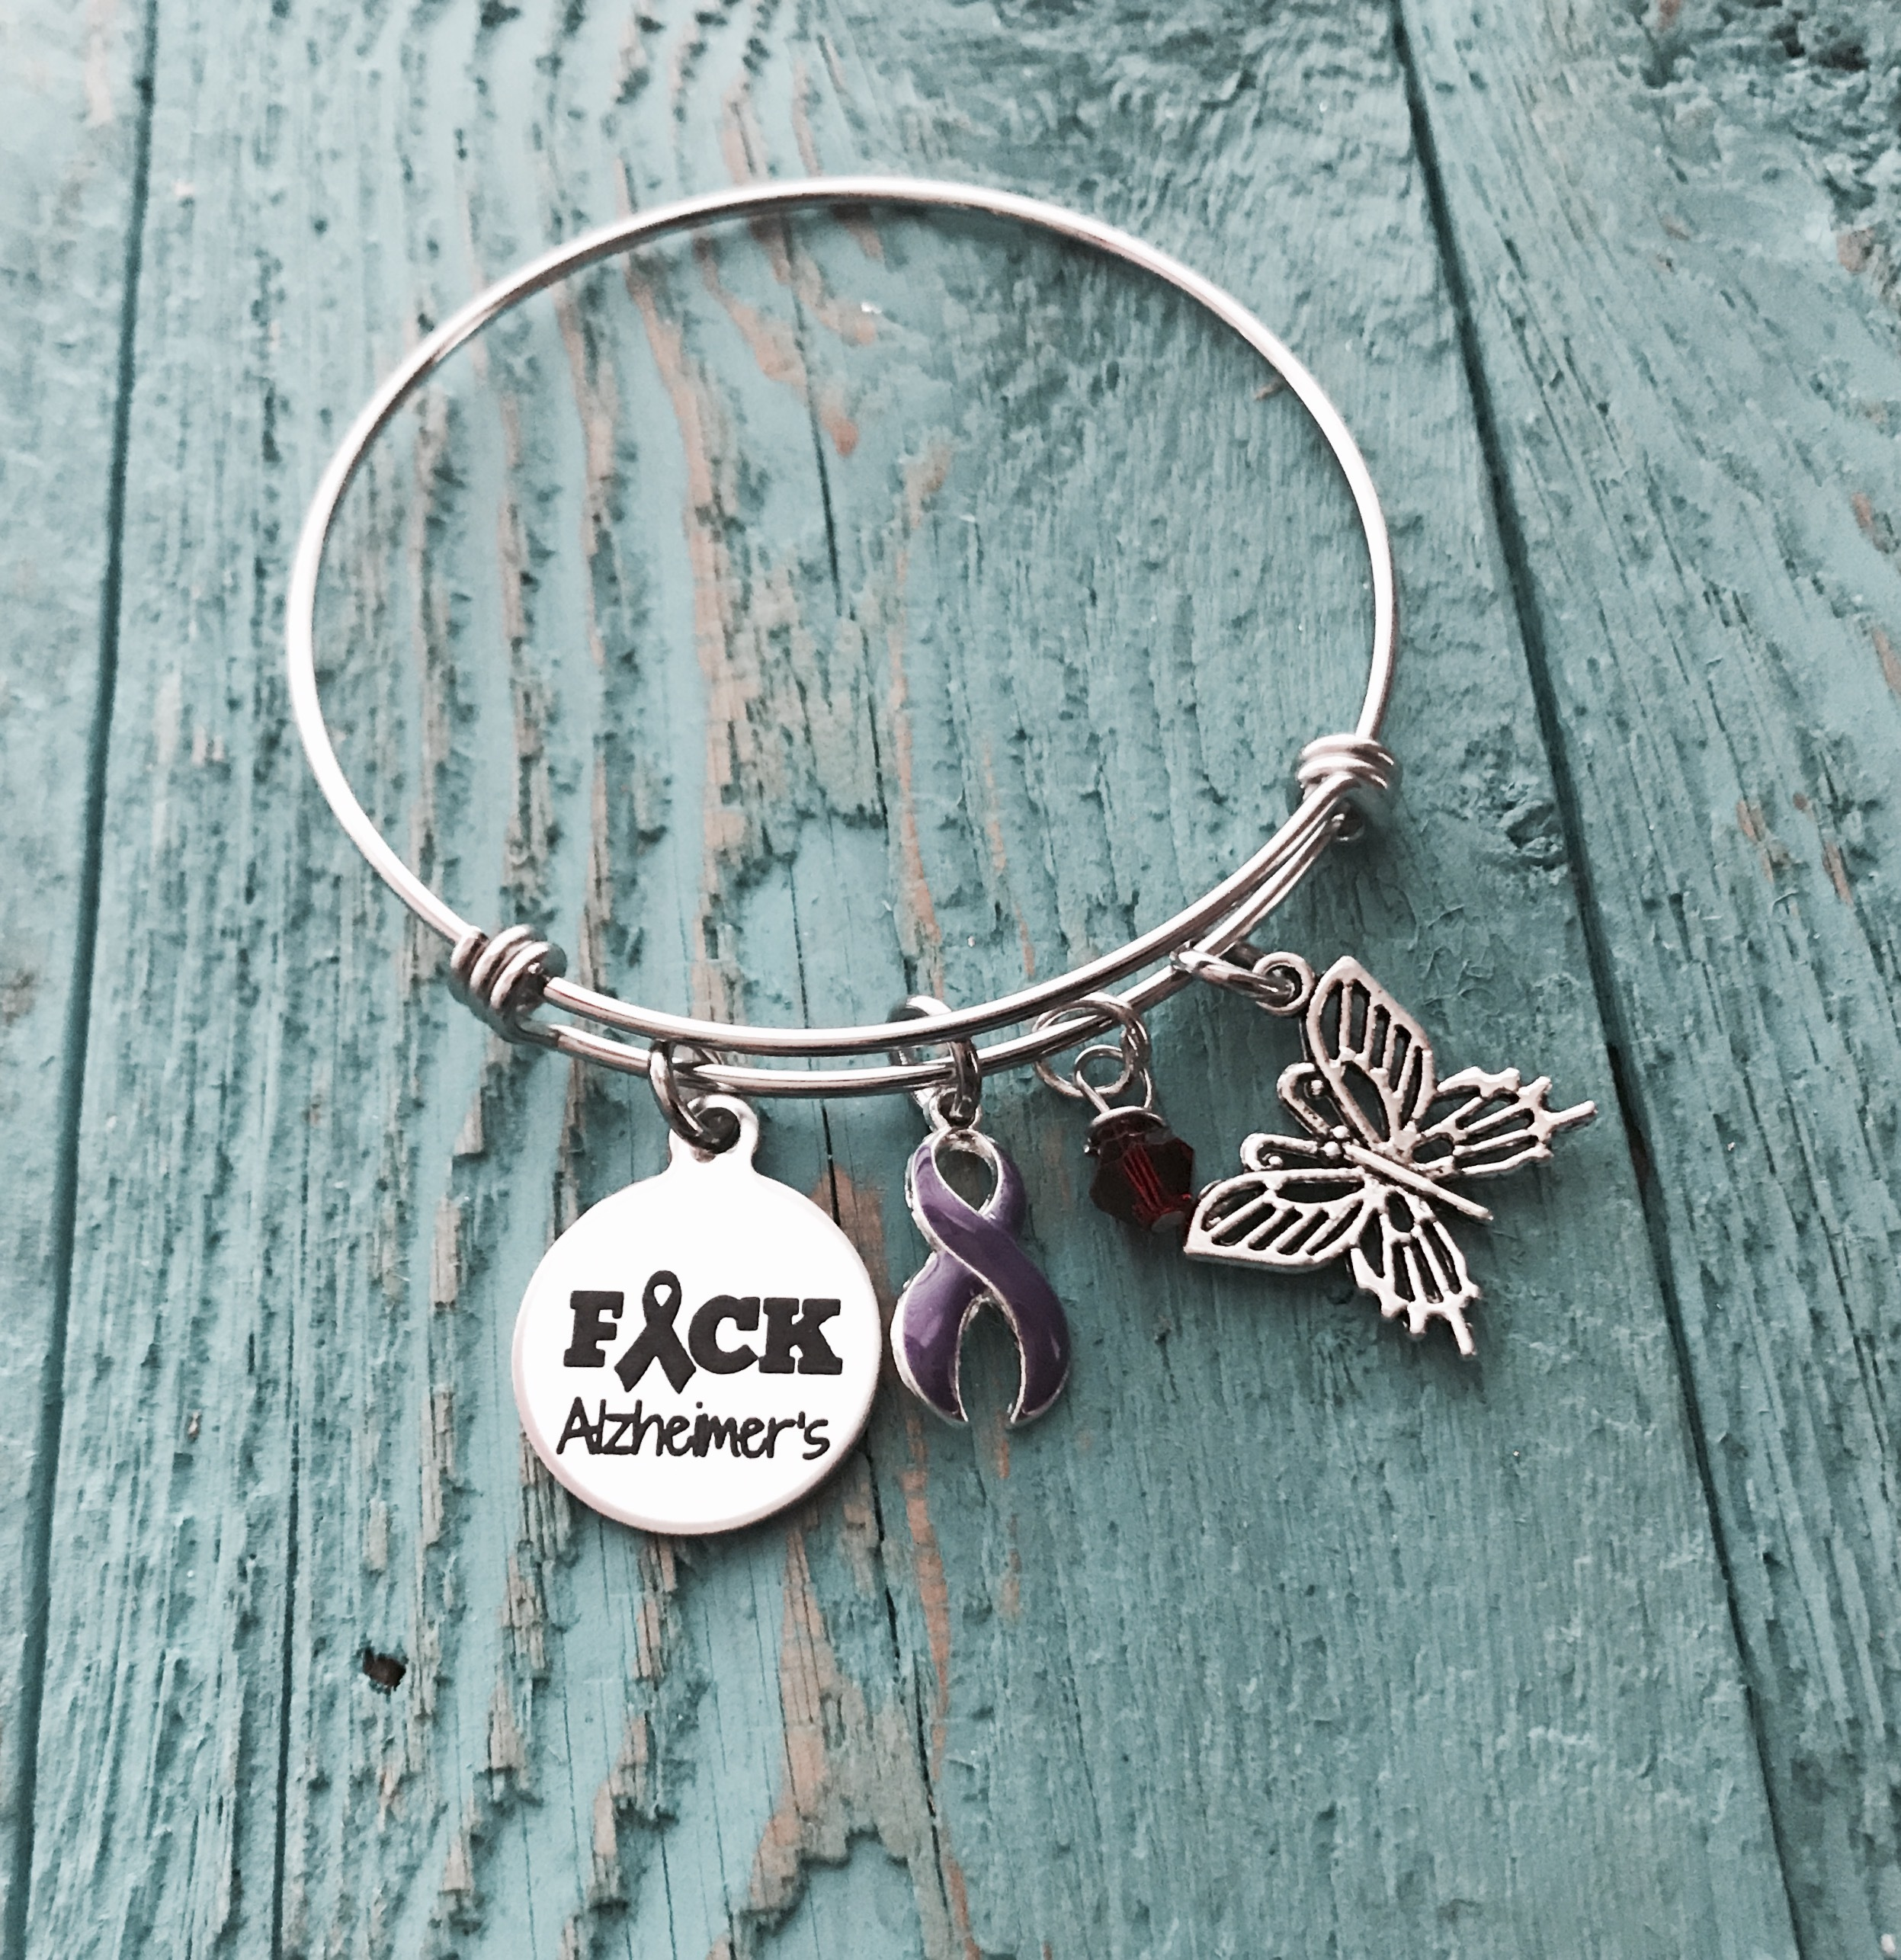 supplies a canada awareness bracelets fibrosis alzheimer c products ribbon index shop bracelet party purple campaign charms with cystic open pk